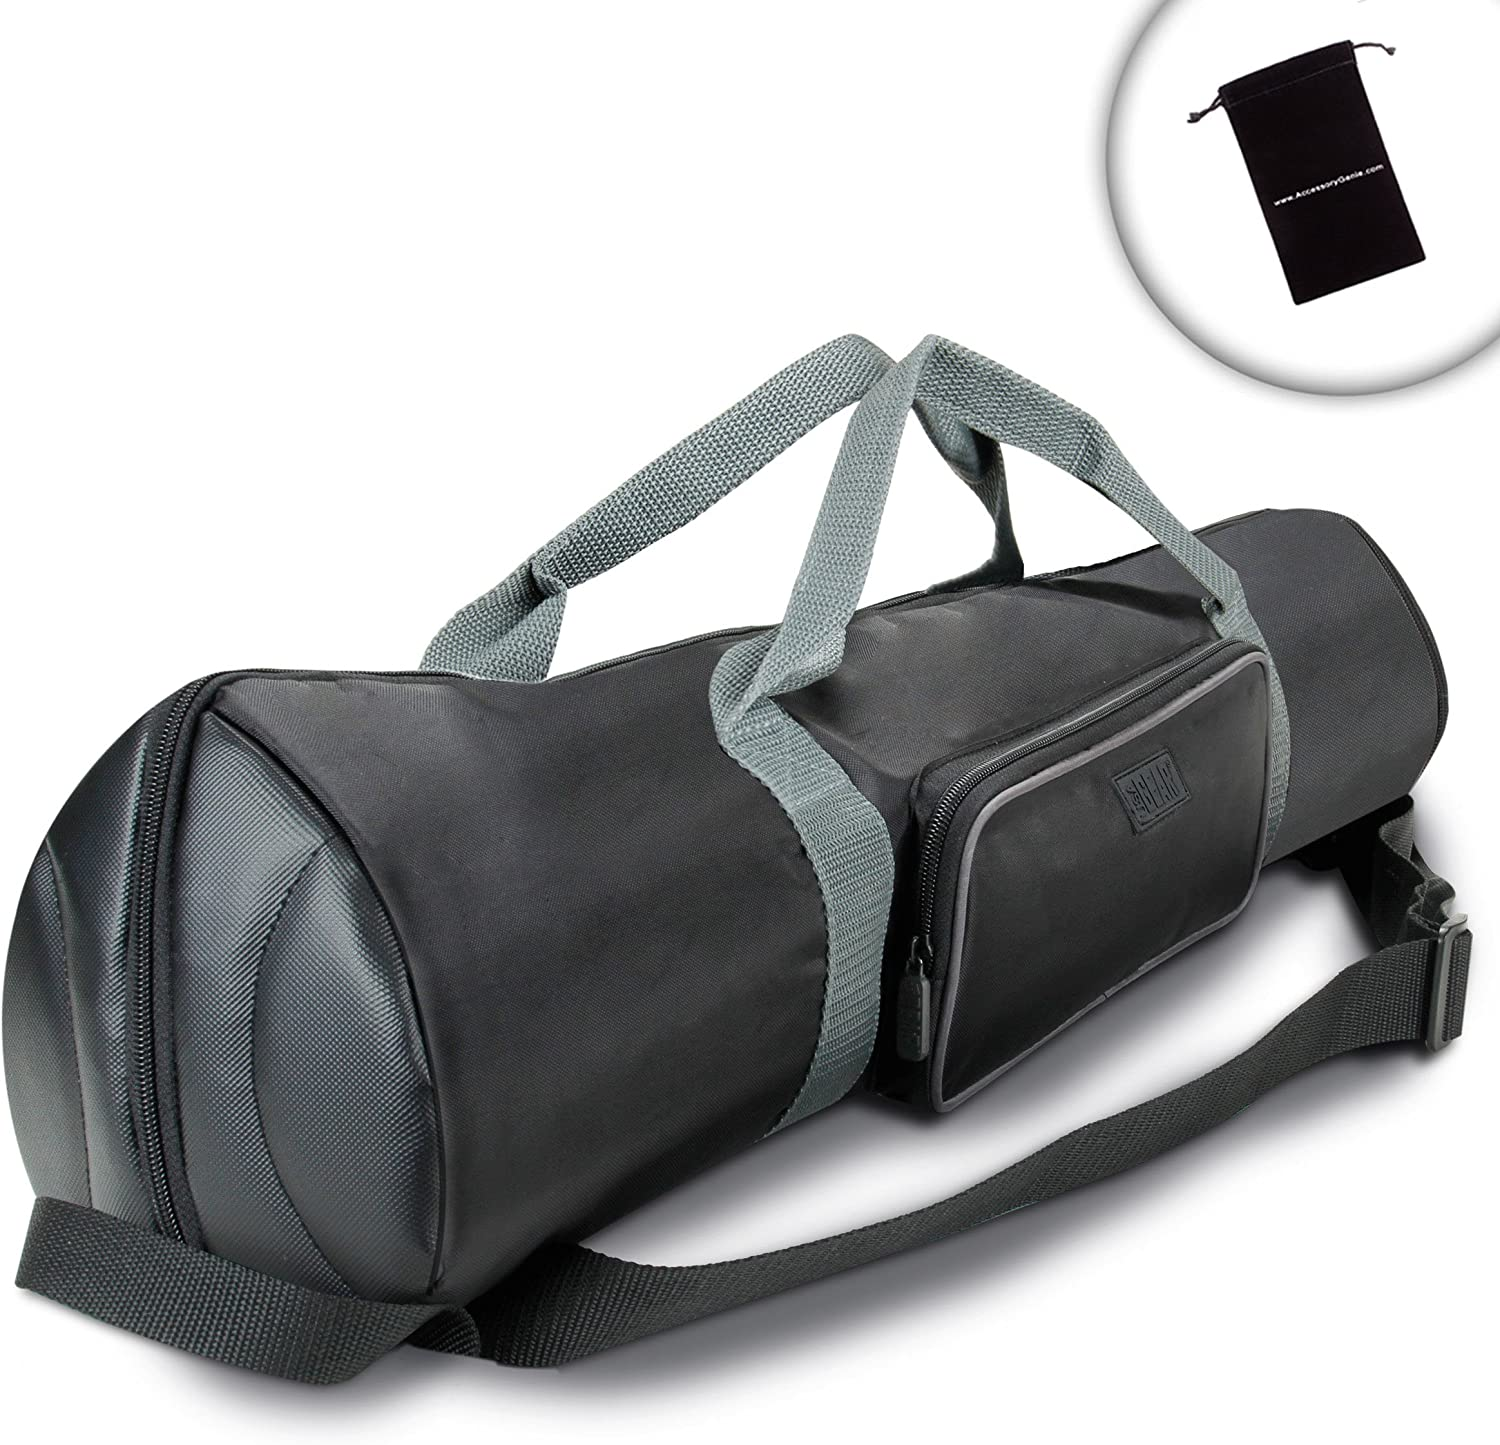 USA Gear Tripod Stand Carrying Case with Travel Strap, Expanding Top and Storage - Compatible with Vanguard, Polaroid, Digital Concepts and More 30-inch Foldable Tripods